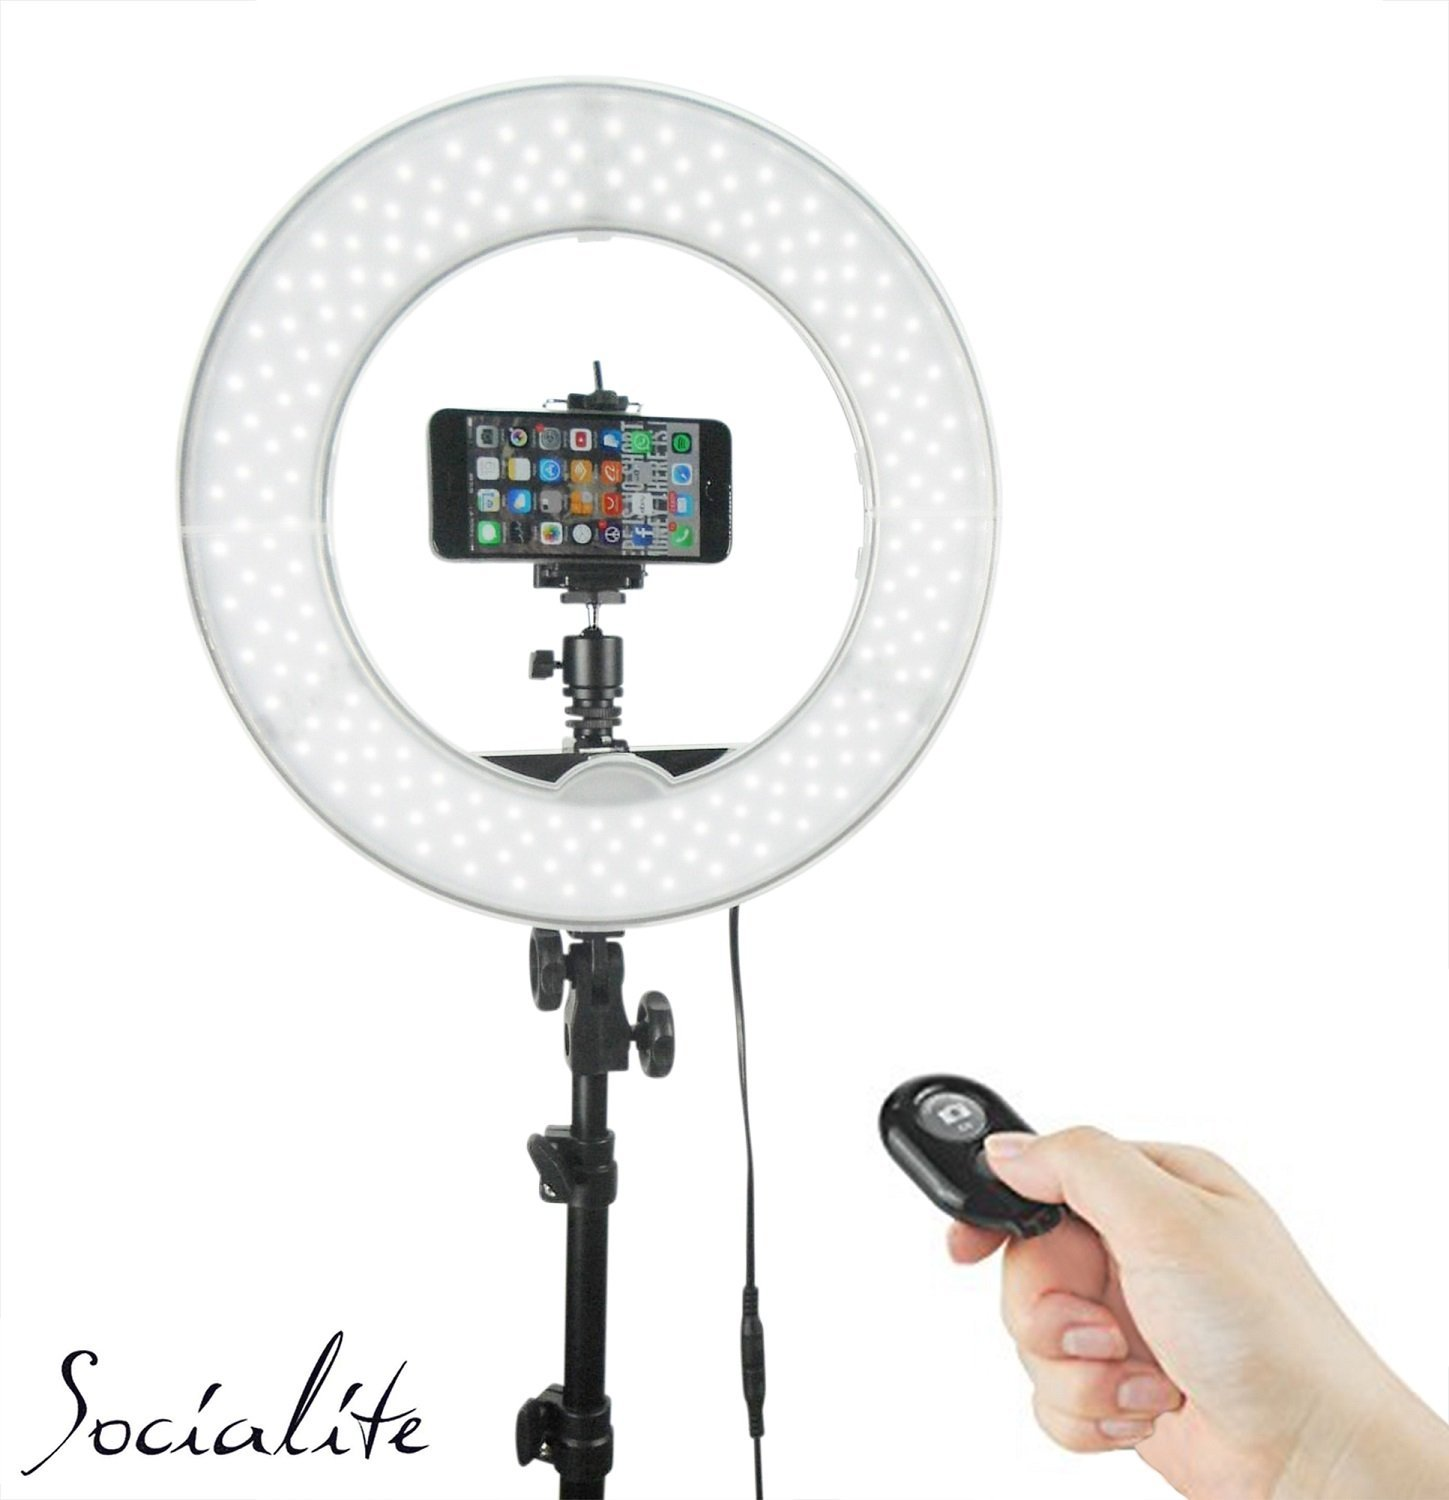 SOCIALITE 12'' LED Dimmable Photo Video Ring Light Kit - Incl Professional Social Media Photography Studio Light, 6ft Stand, Remote, Heavy Duty Mount for DSLR Camera Fits Iphone 6s Android Smartphones